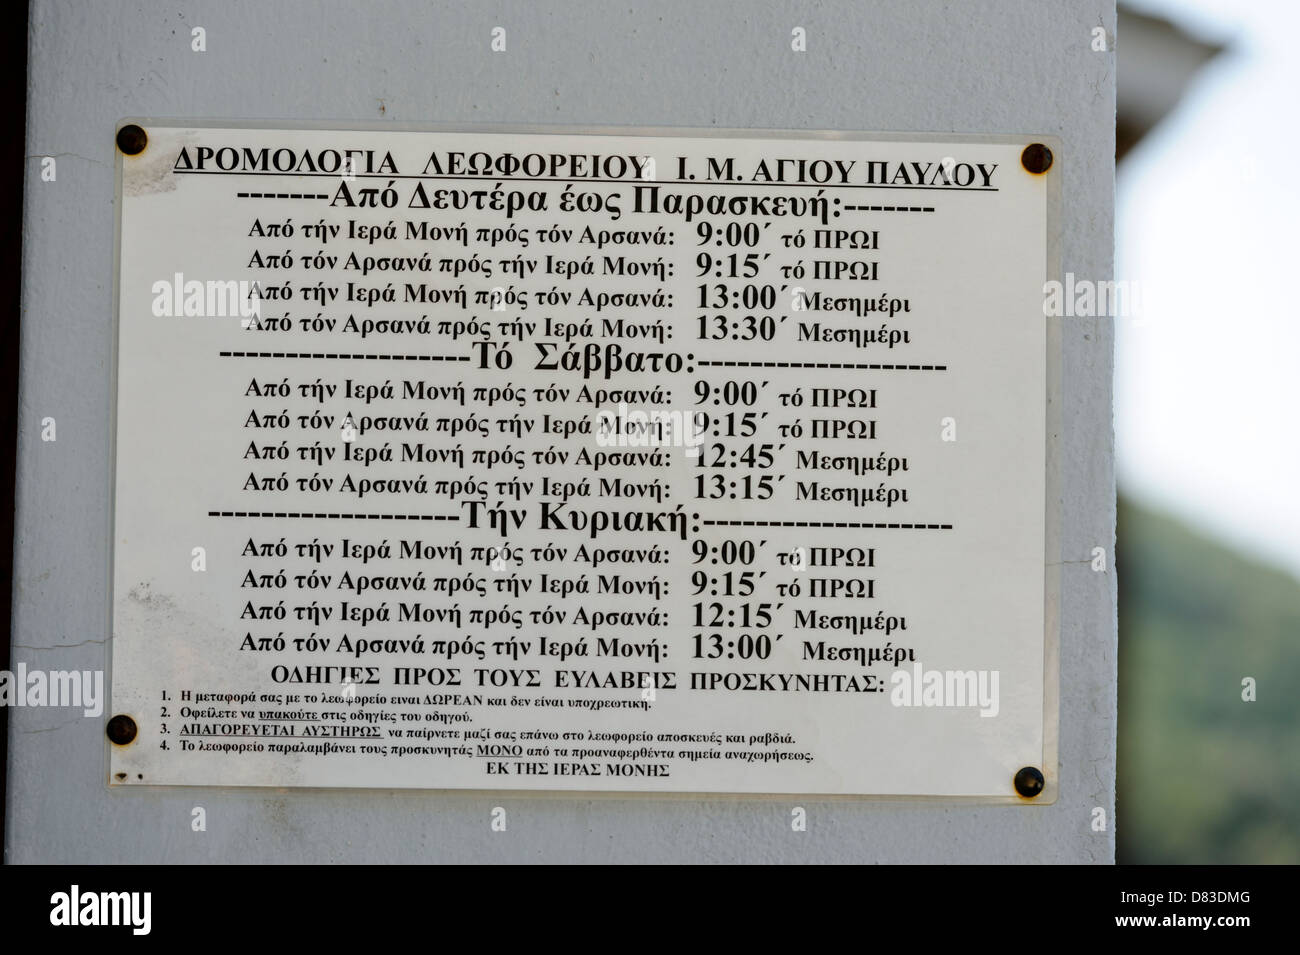 Schedule of church services in Greek language - Stock Image